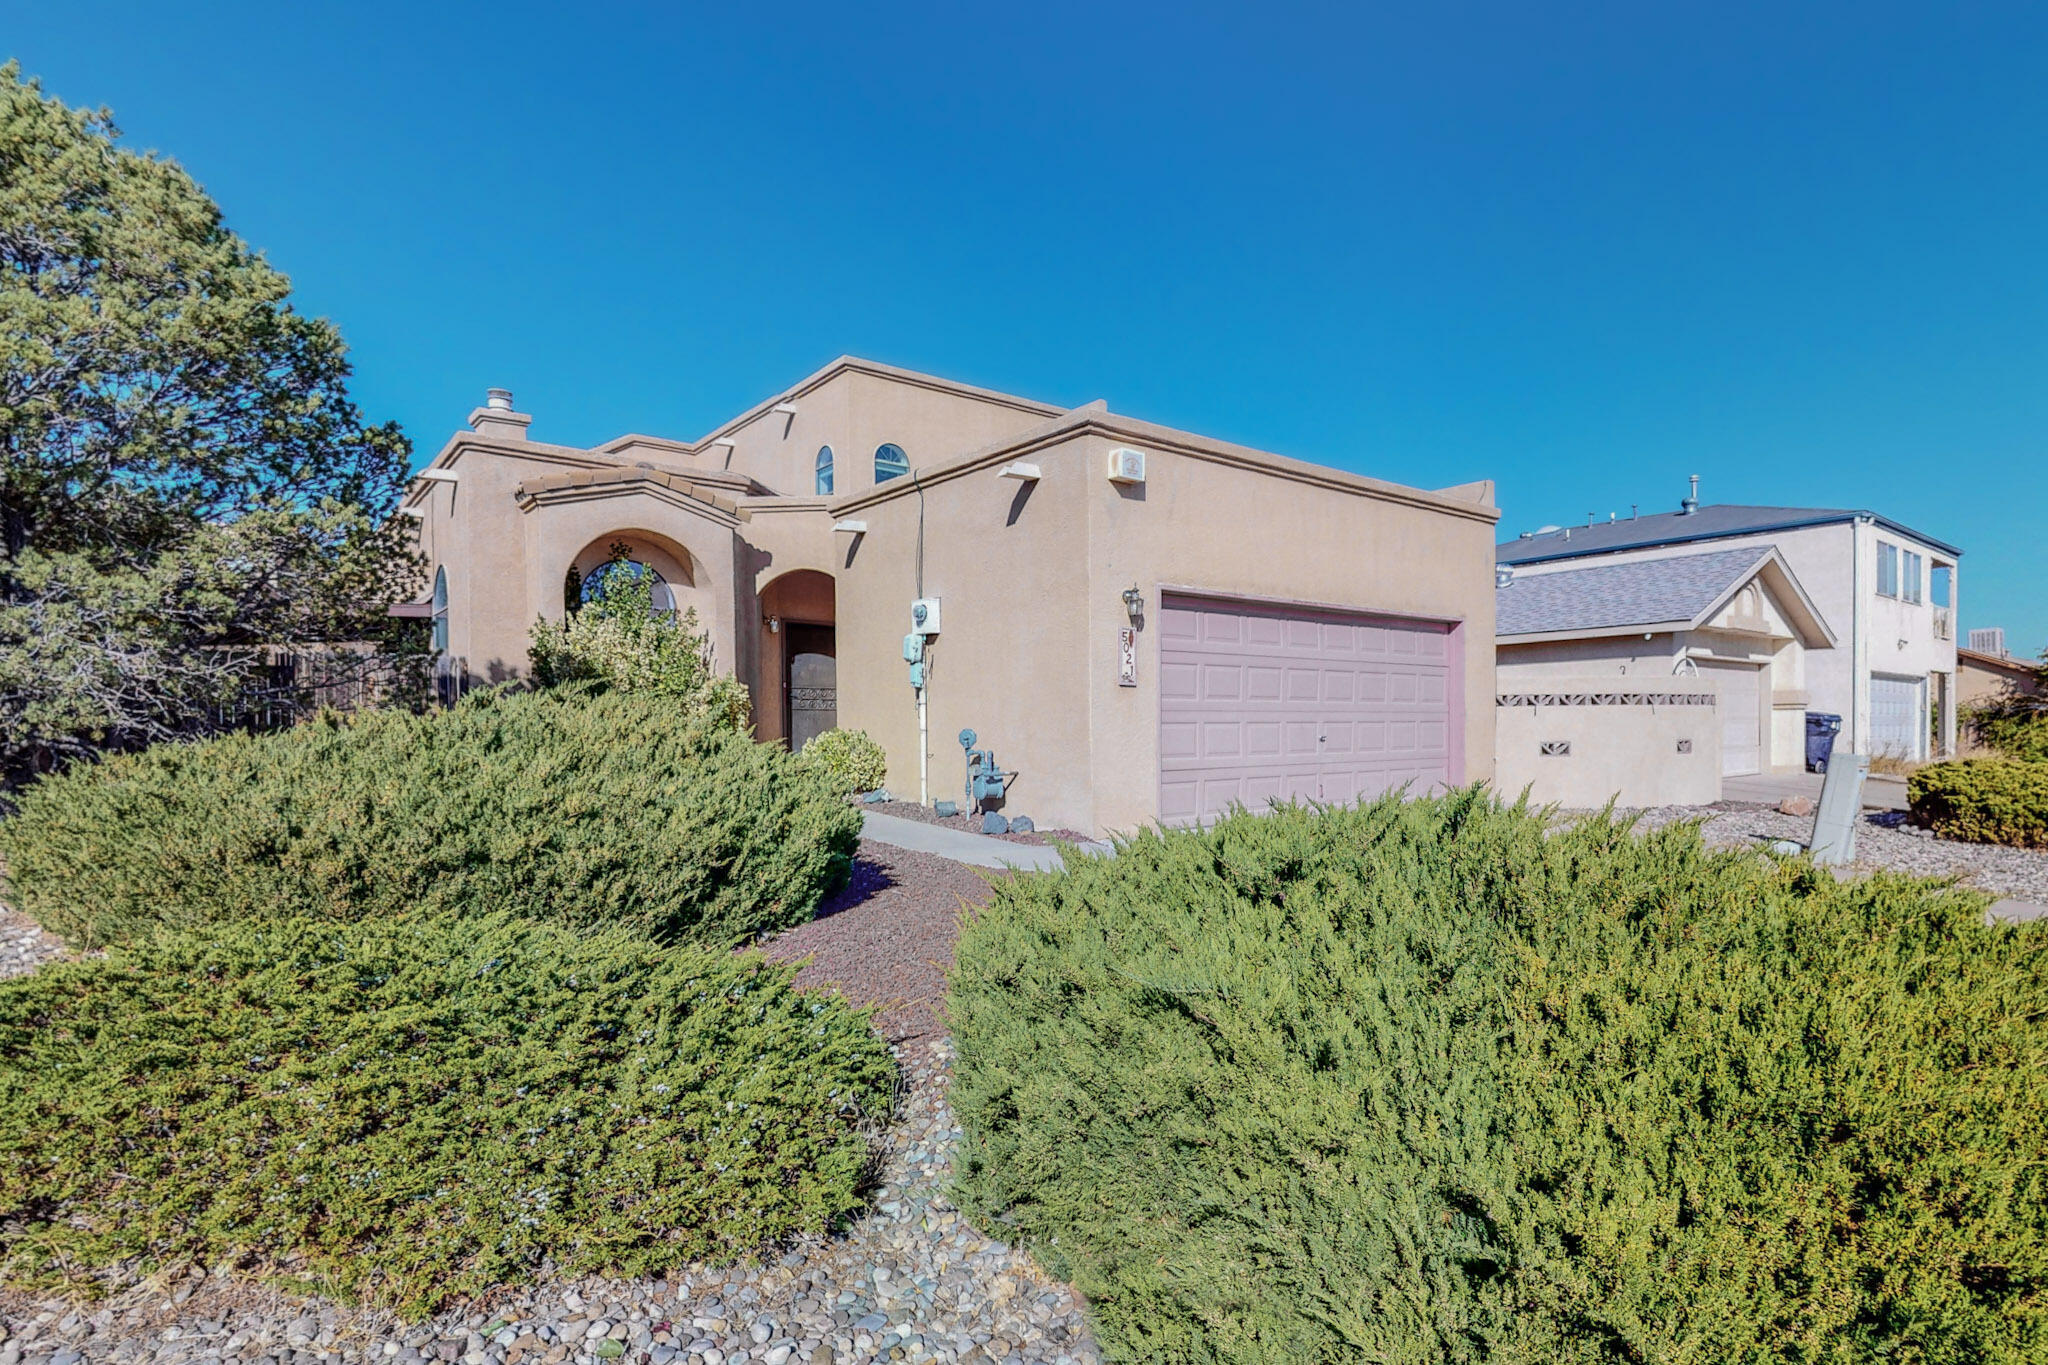 Quiet, family neighborhood located close to the Petrogliphs. Open floor plan, kiva fireplace, upstairs master suite with 2 closets & balcony, The masterbath boasts a jacuzzi tub & seperate shower. Covered patio. Mature yard. Mountain views. Competively priced !